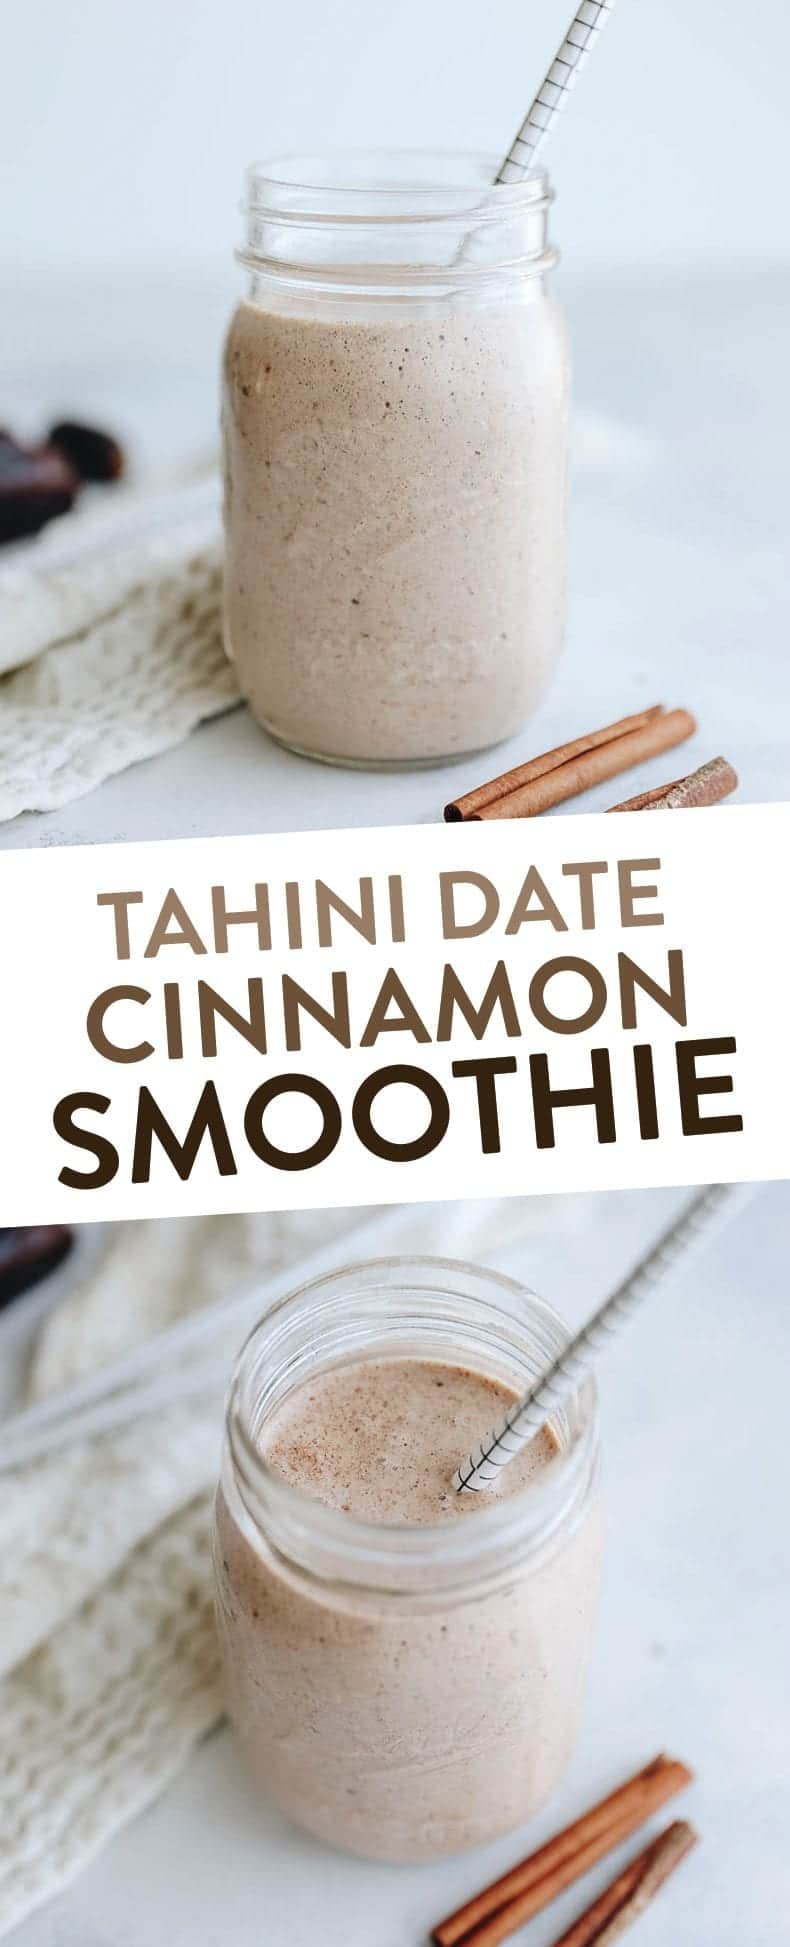 Creamy and filling, this Tahini Date and Cinnamon Smoothie is packed full of flavor, nutrition and healthy fats for a satisfying breakfast or healthy meal recipe #smoothie #tahinismoothie #tahini